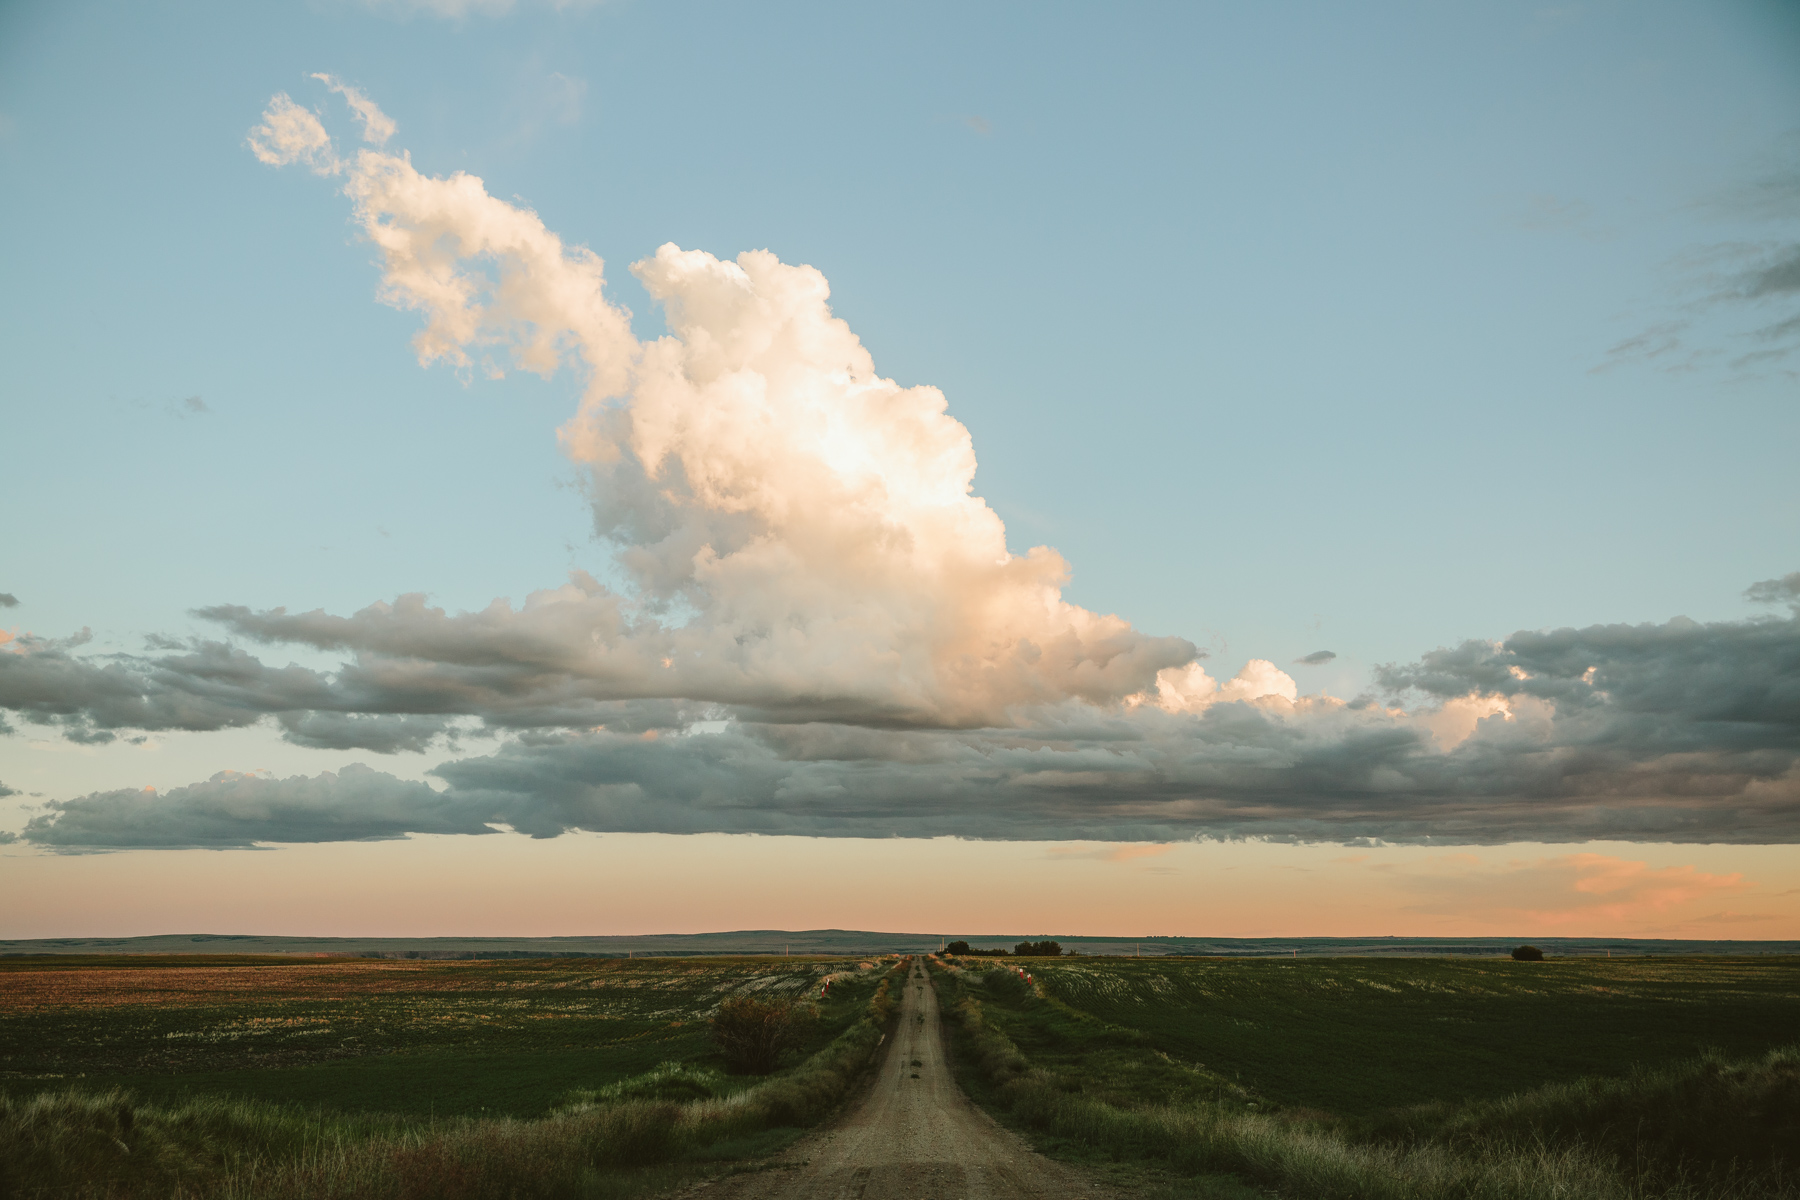 alberta-landscape-lifestyle-photography-mikeseehagel-09